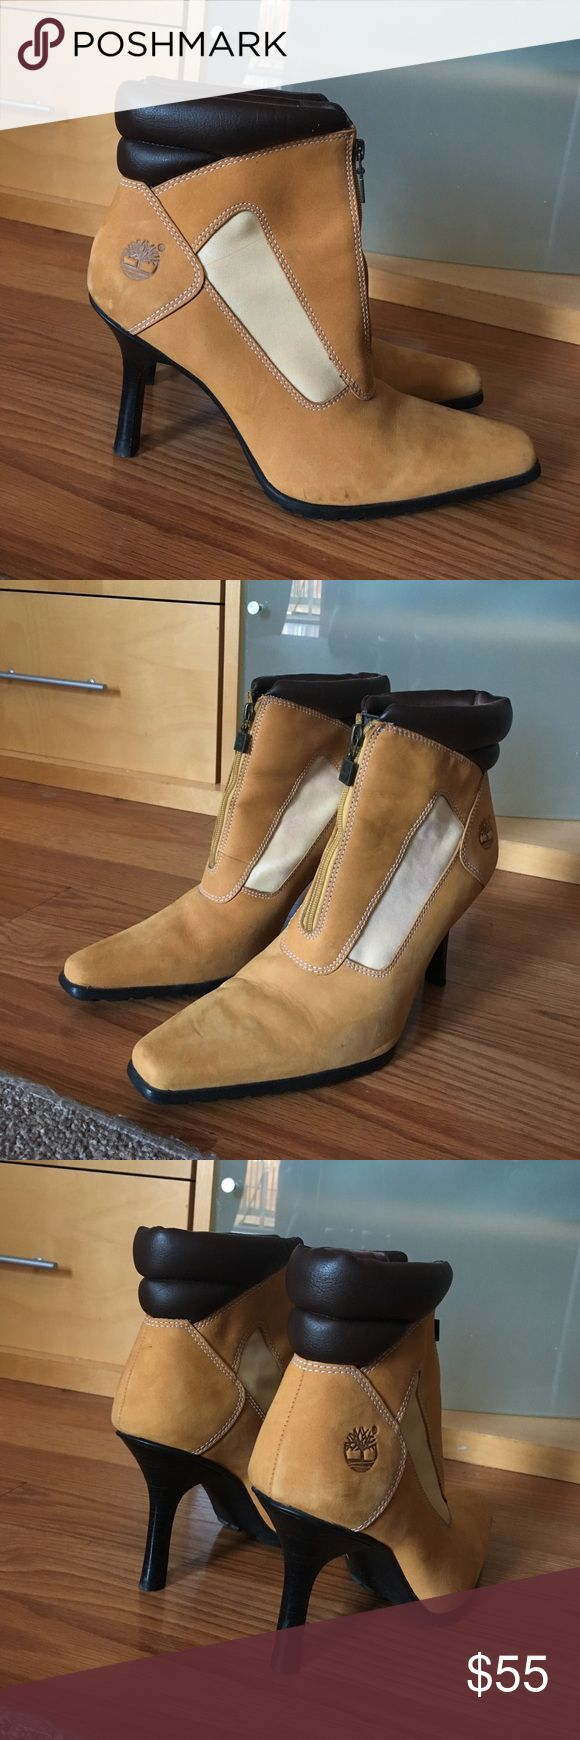 Timberland High Heel Zip Ankle Wheat Boots Sz 7 Hello, this is a fabulous pair of women's Timberland high heel boots. They are in good condition! There are some scuffs on the side. Size 7M. Please send me any questions, thanks! Timberland Shoes Ankle Boots & Booties